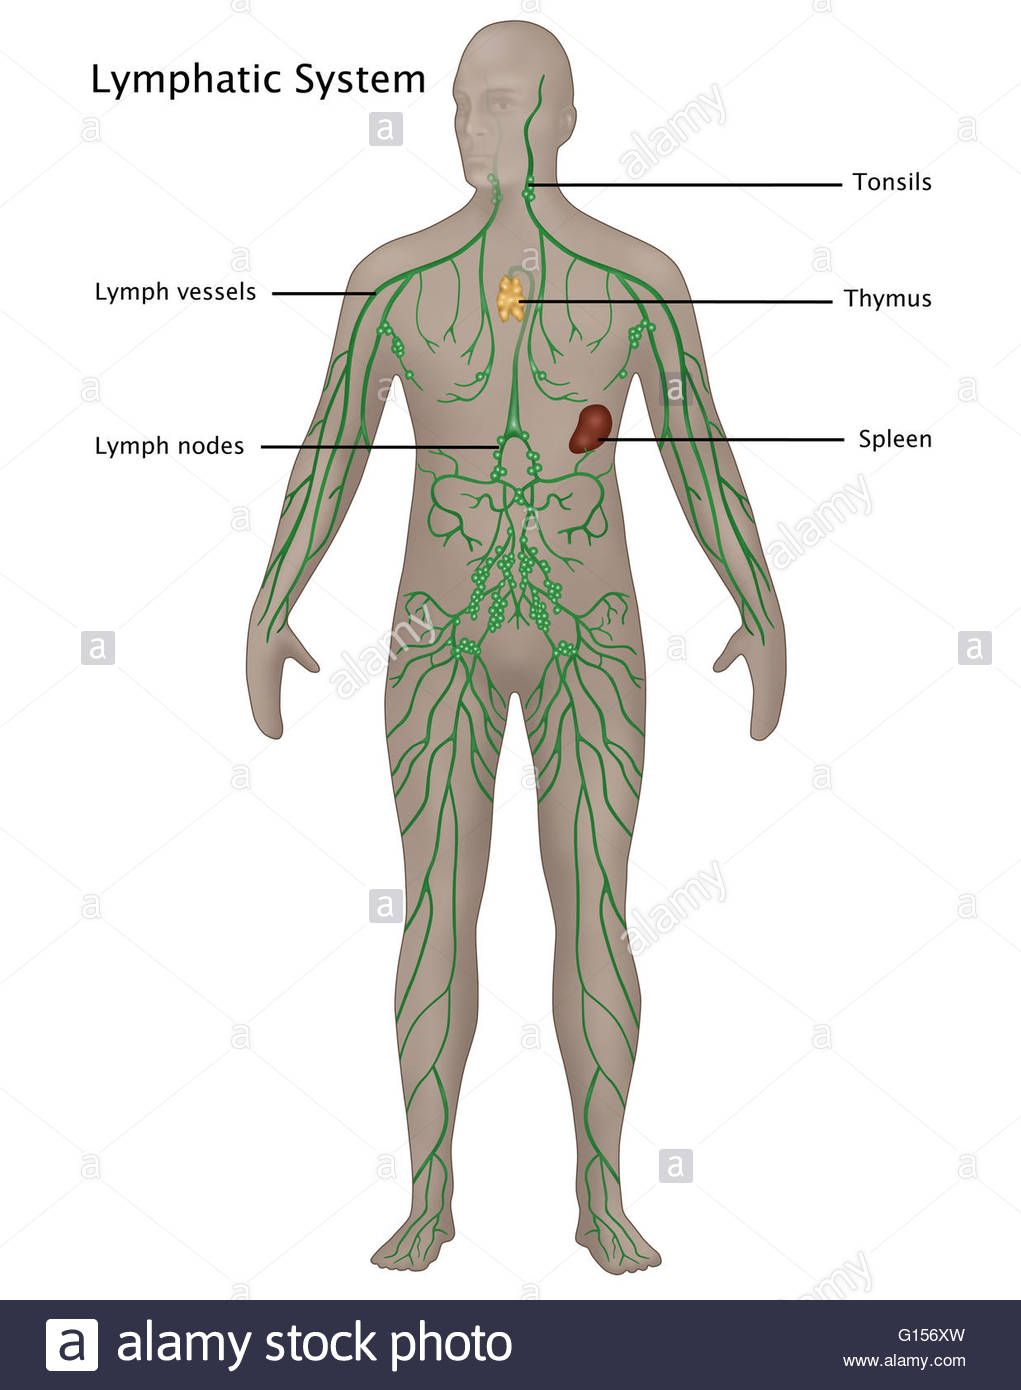 Download this stock image Illustration of the lymphatic